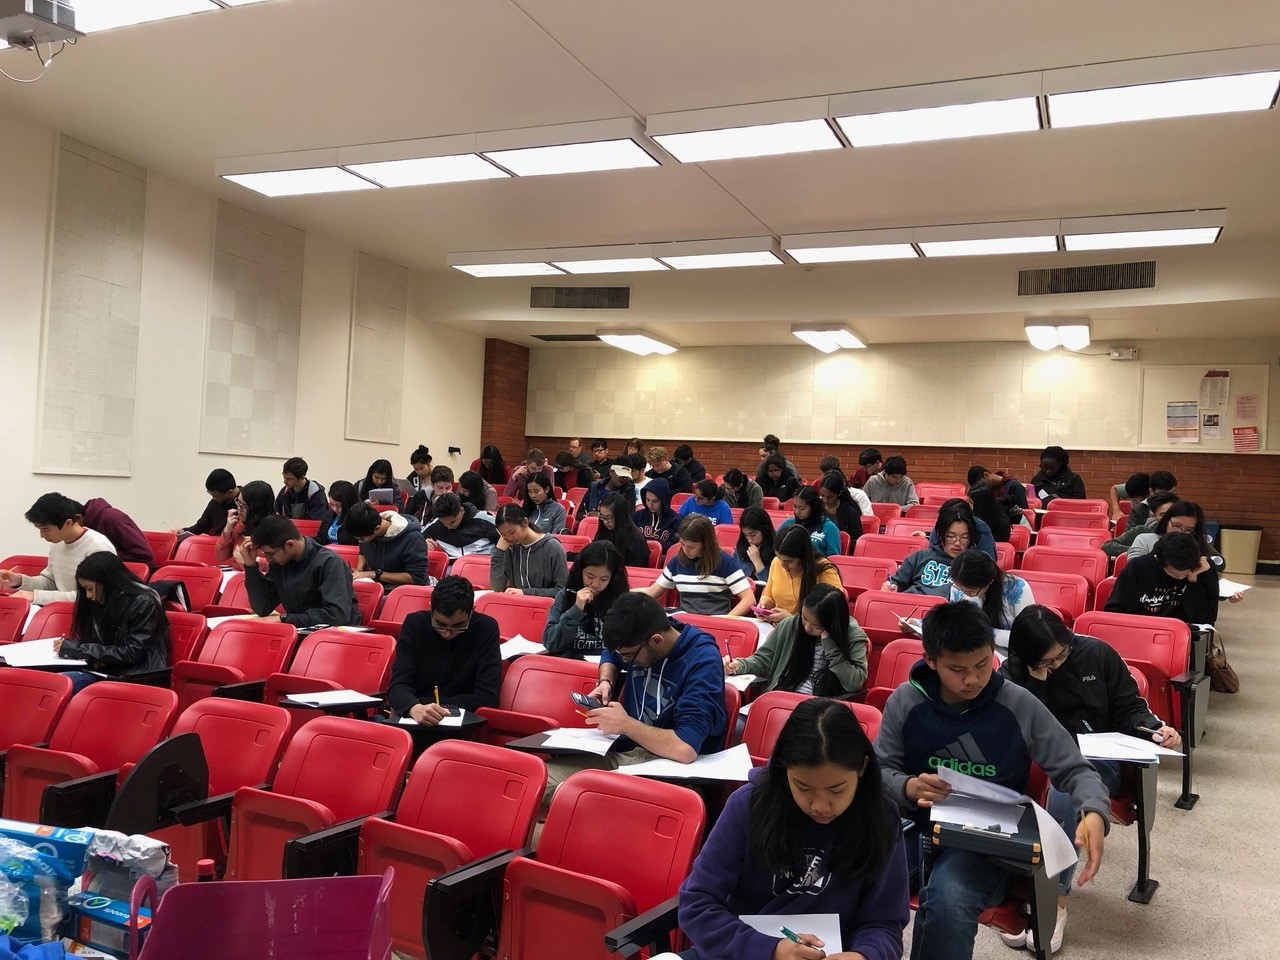 Students taking exam in lecture hall